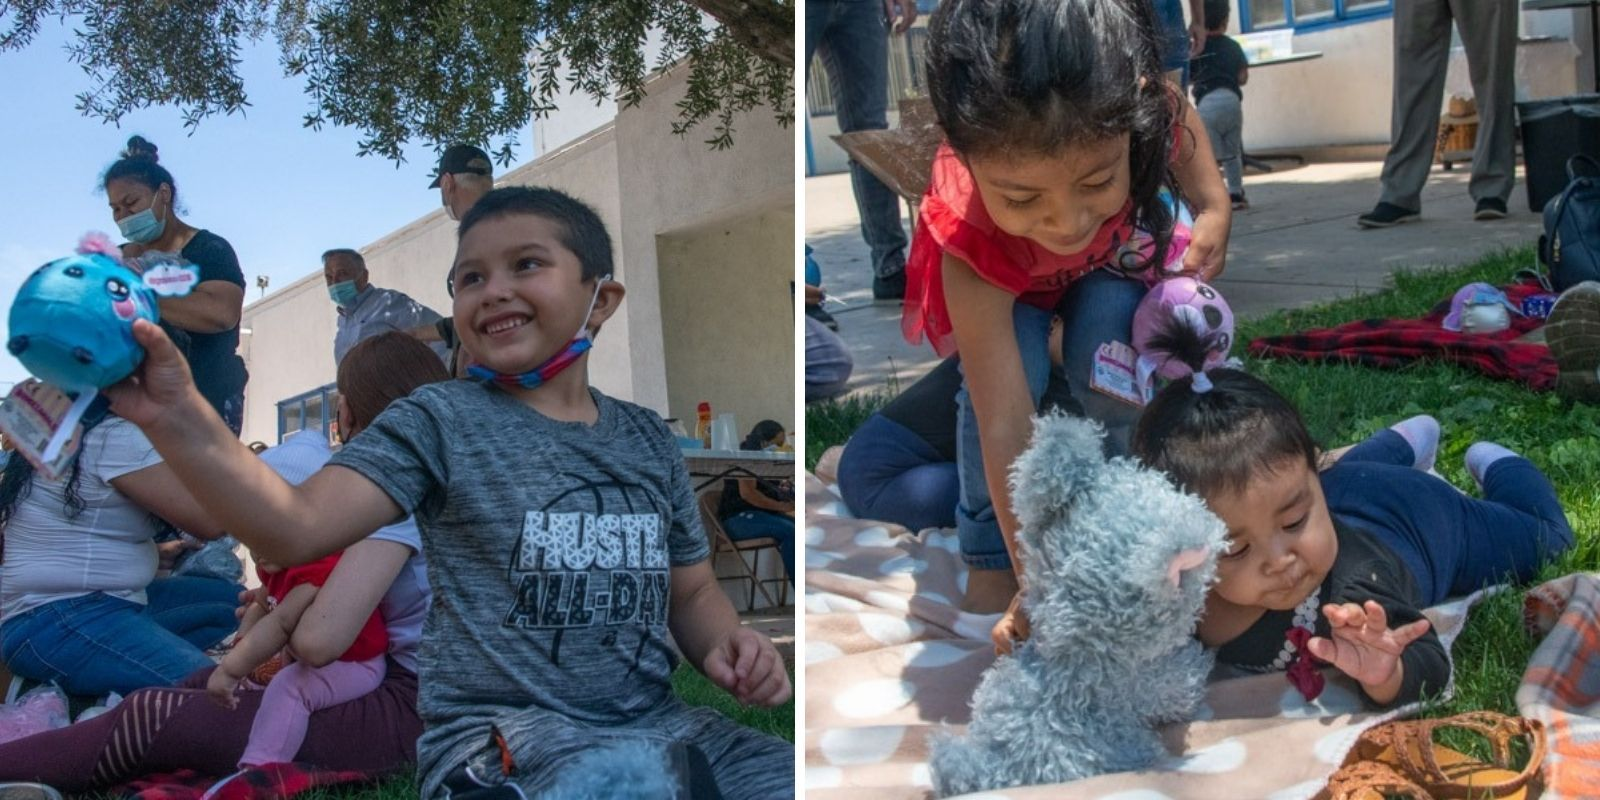 EXCLUSIVE: California toymaker inspired by Pope Francis documentary filmmaker to deliver stuffed animals to migrant children